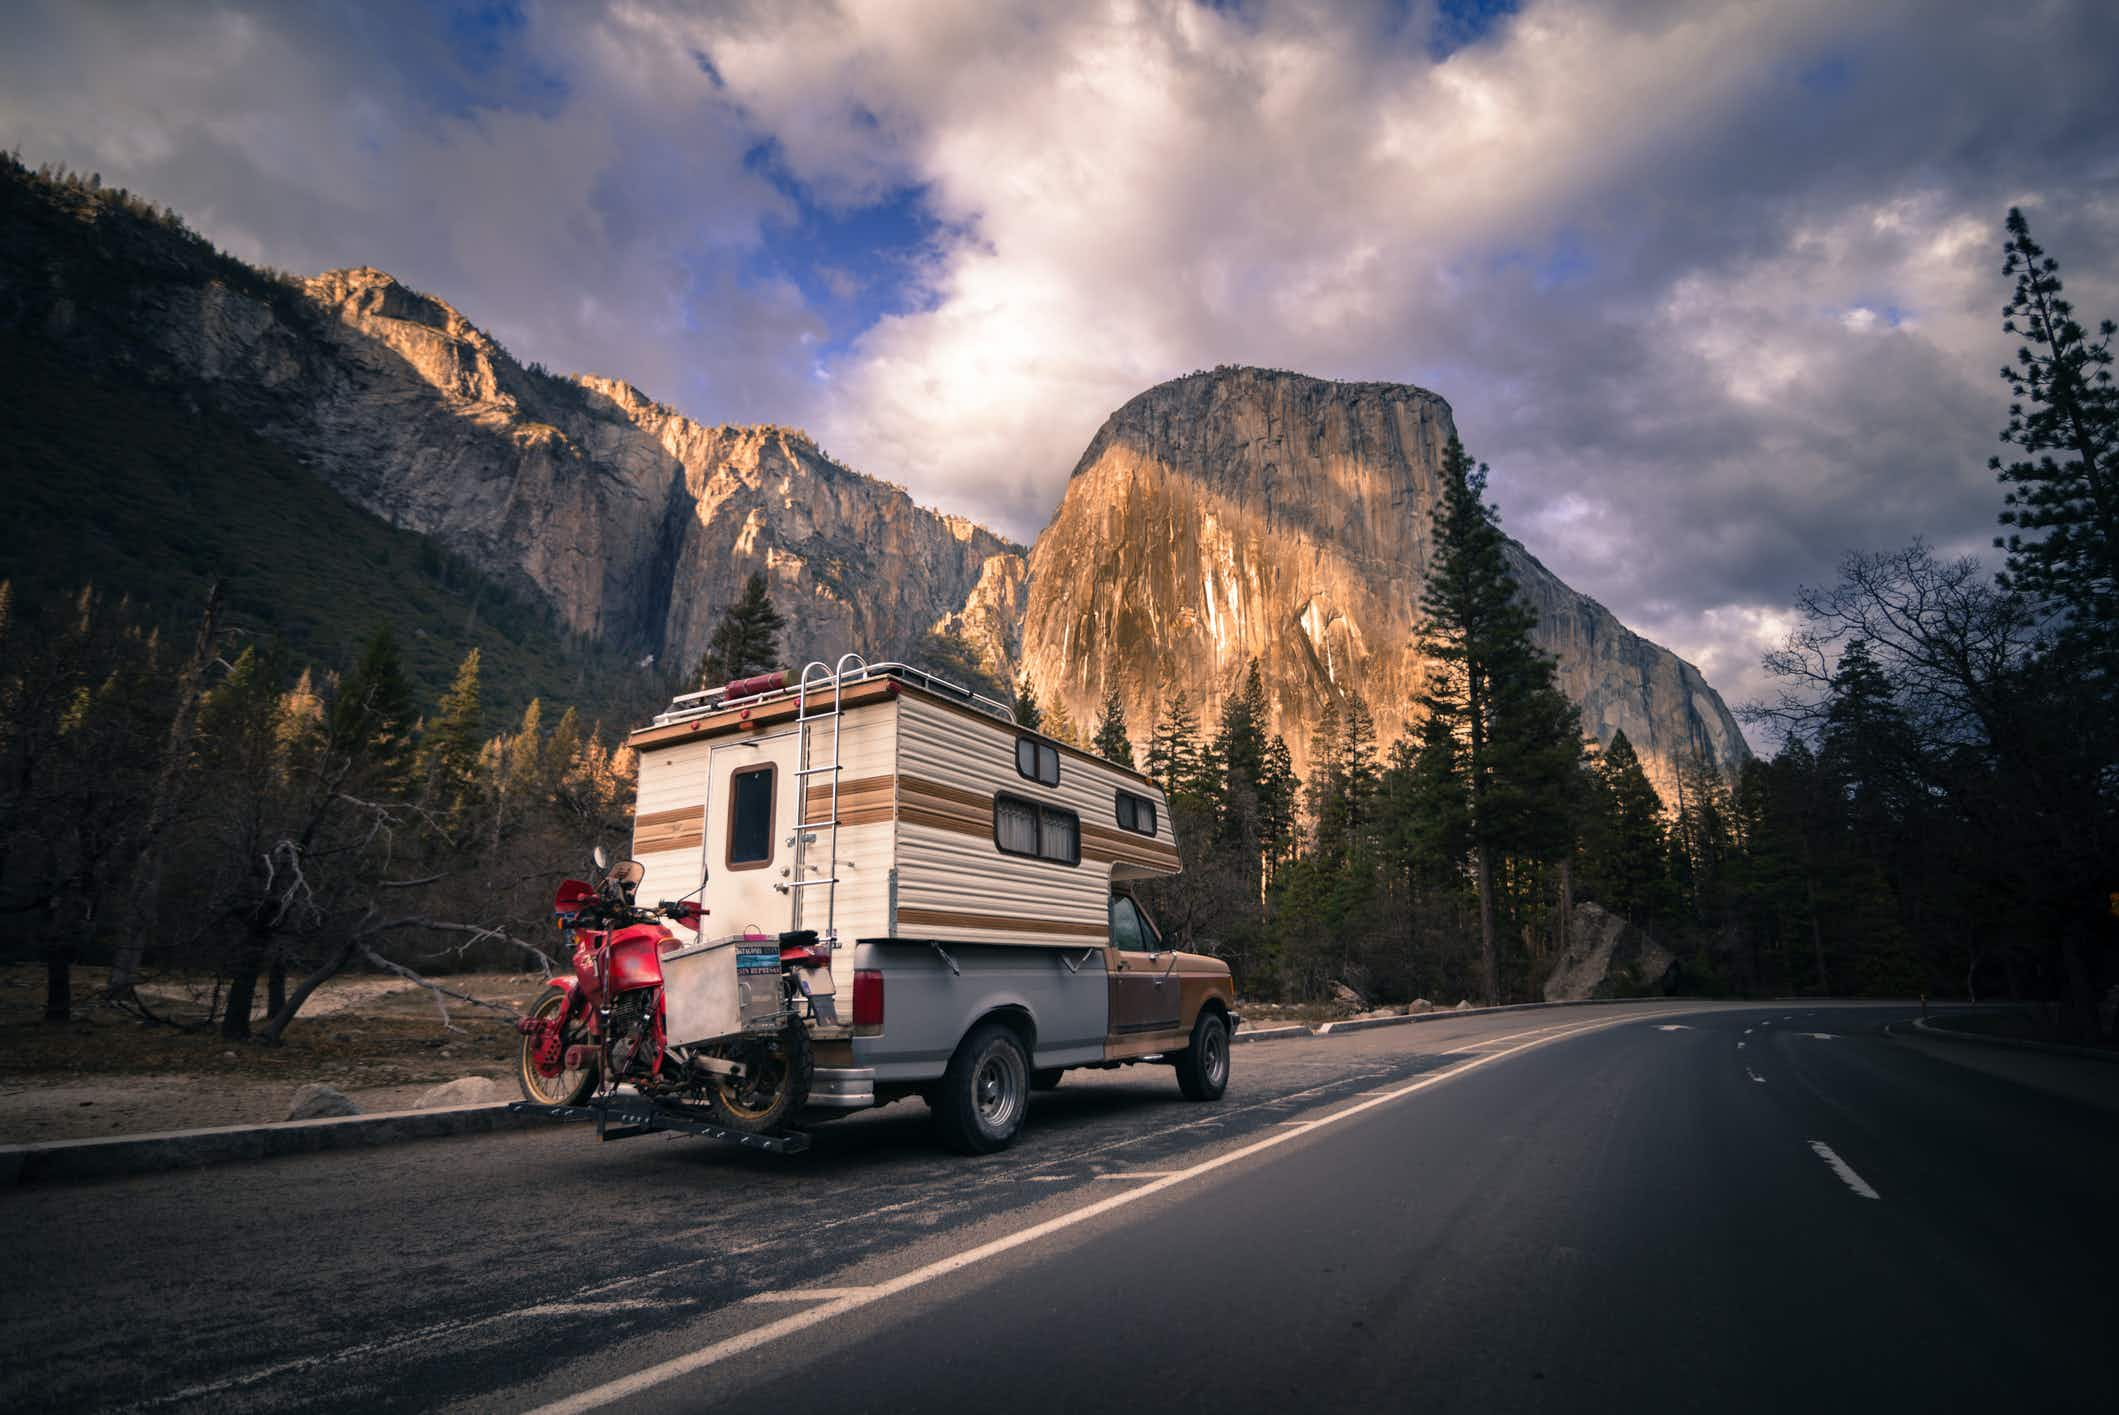 Enjoy incredible scenery like Yosemite National Park and a lot of flexibility when road tripping in a camper van  © Getty Images